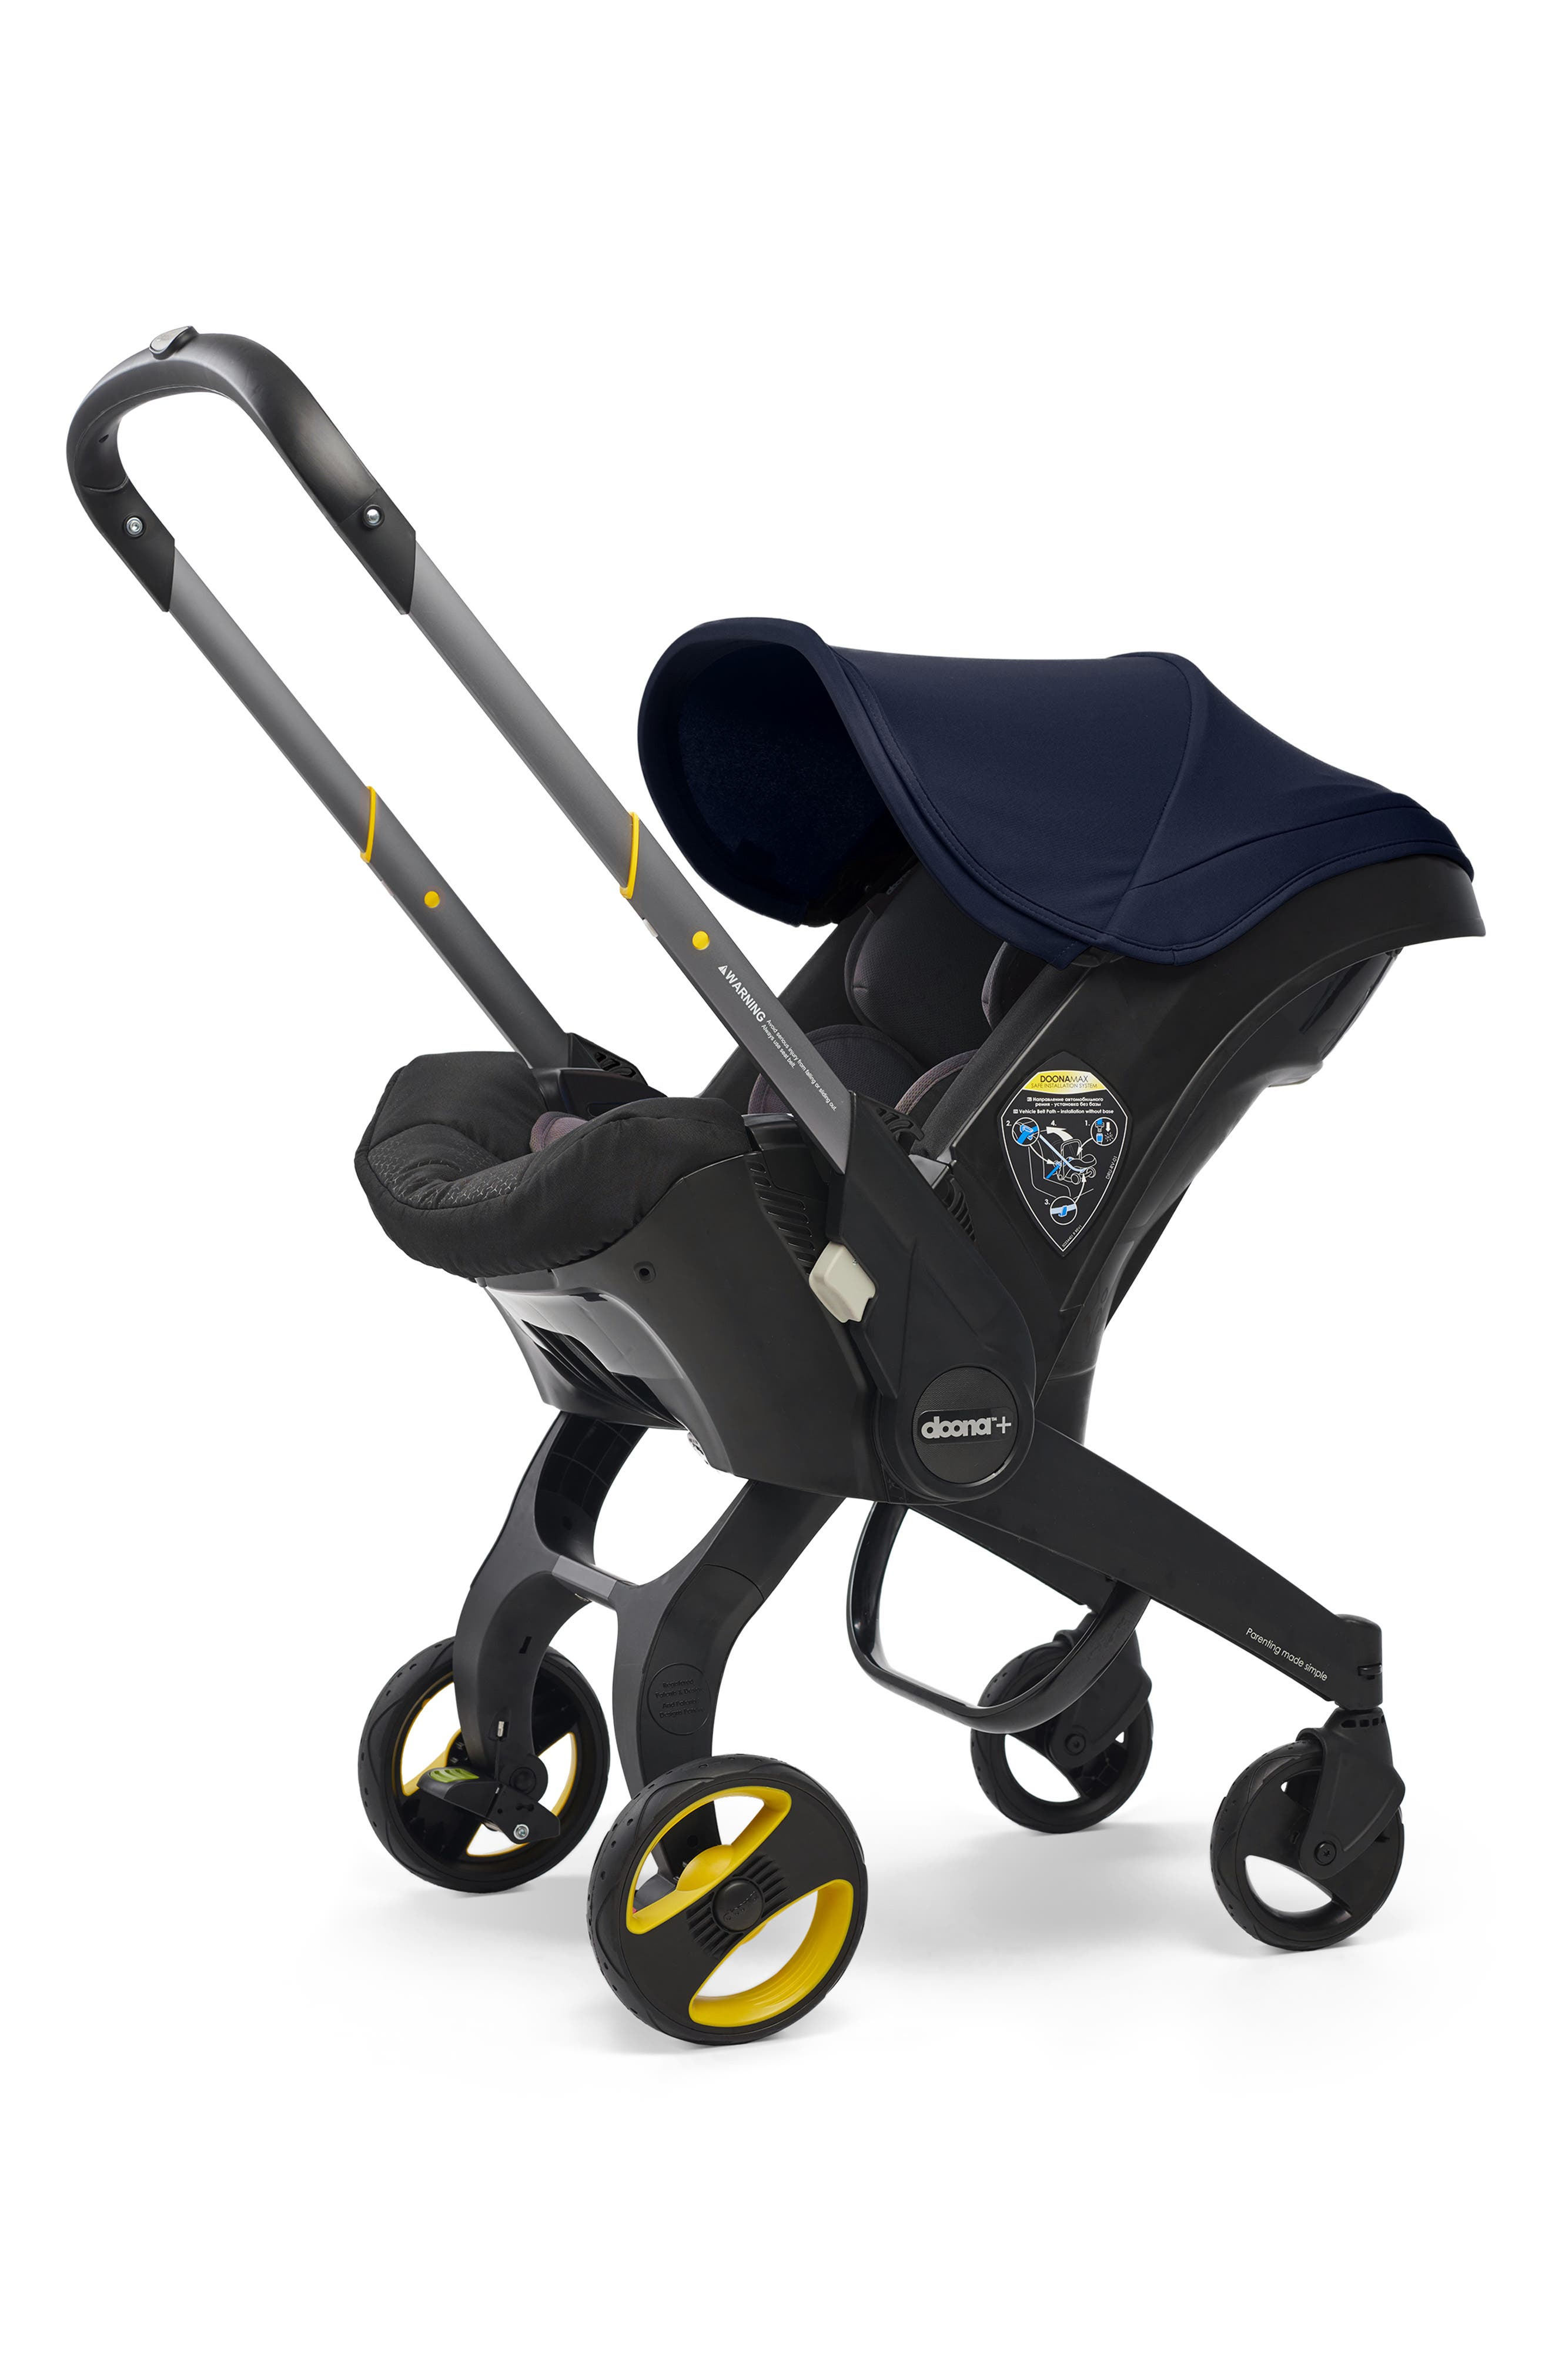 Infant Doona Convertible Infant Car Seatcompact Stroller System With Base